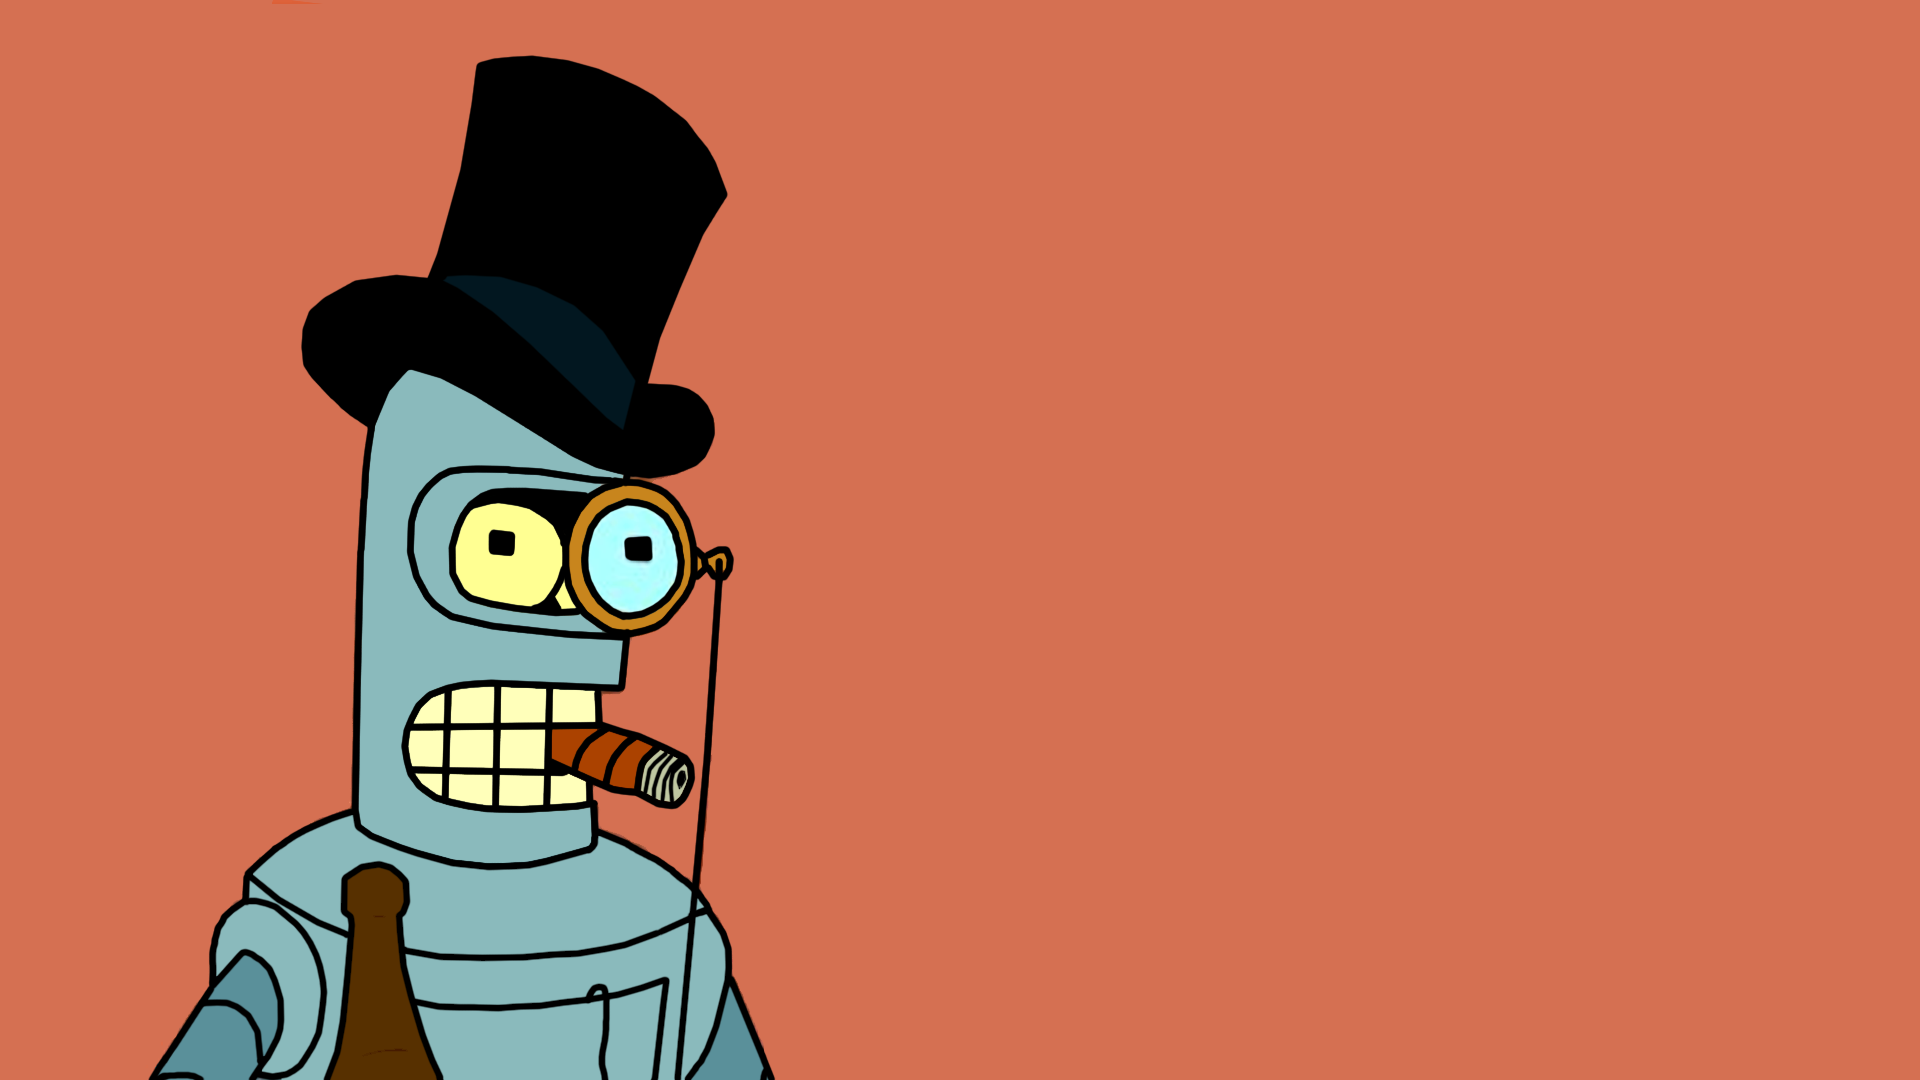 Bender 1920x1080, Top on BsnSCB Gallery